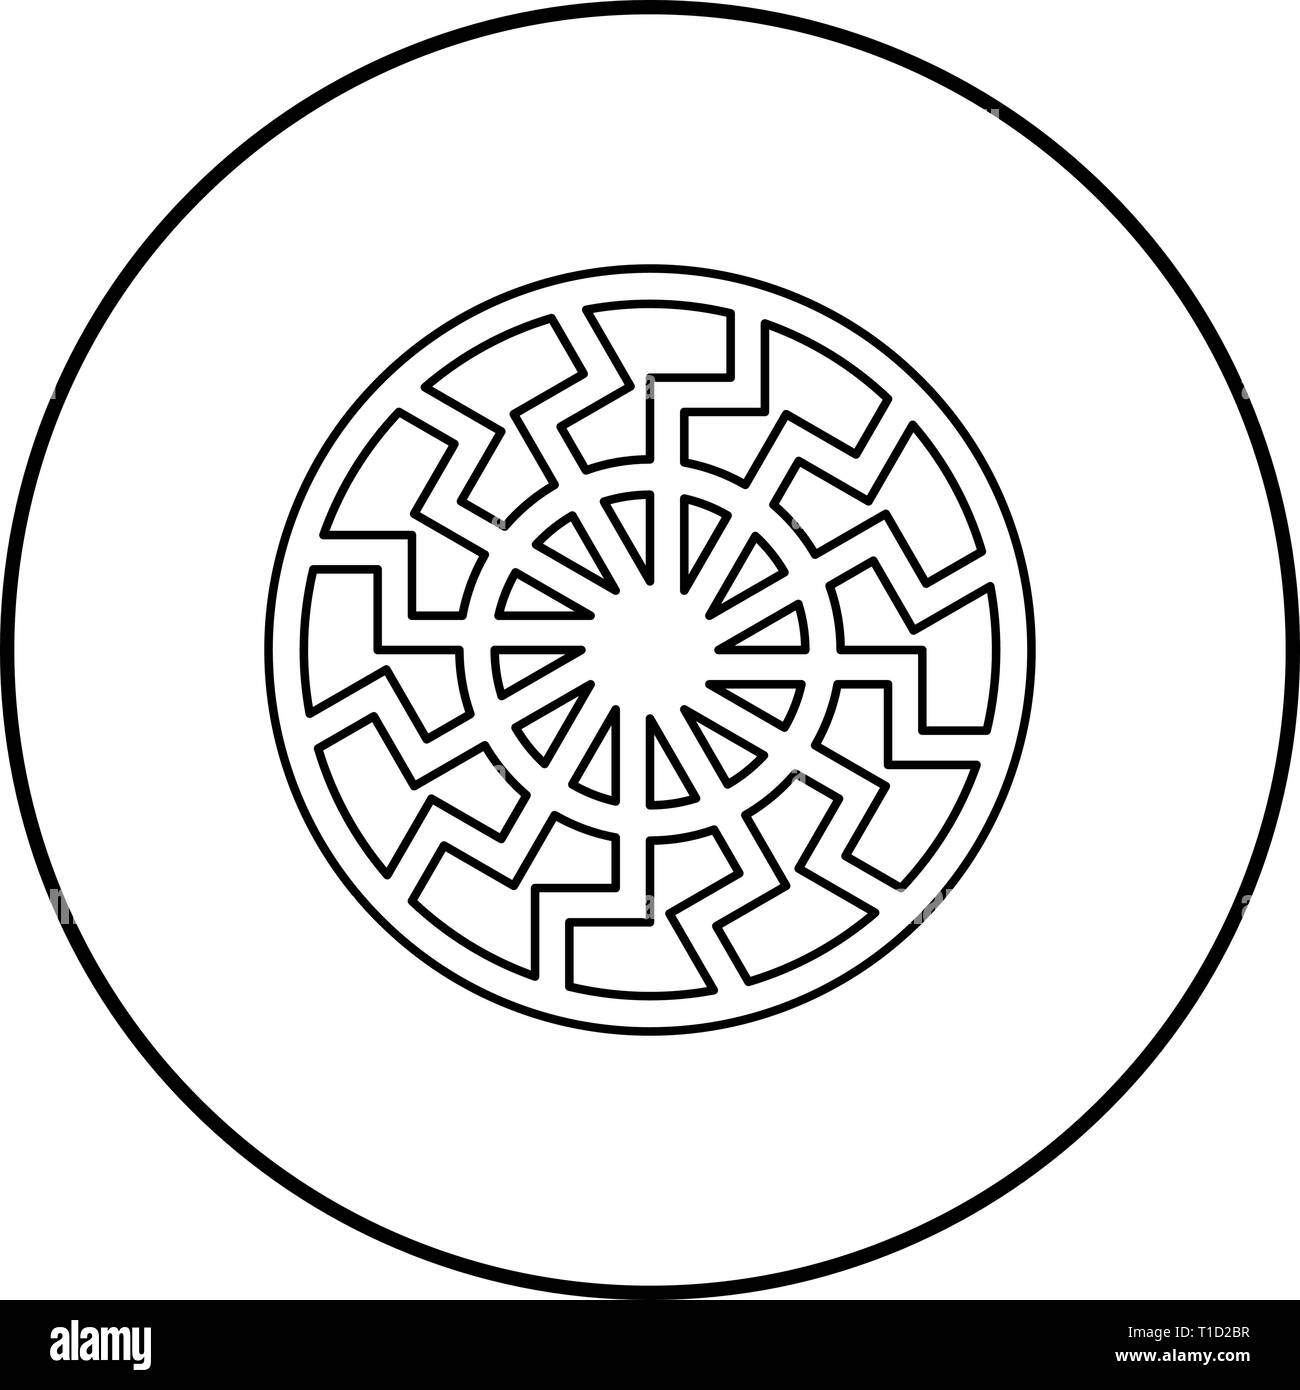 Black sun symbol icon outline black color vector in circle round illustration flat style simple image - Stock Image